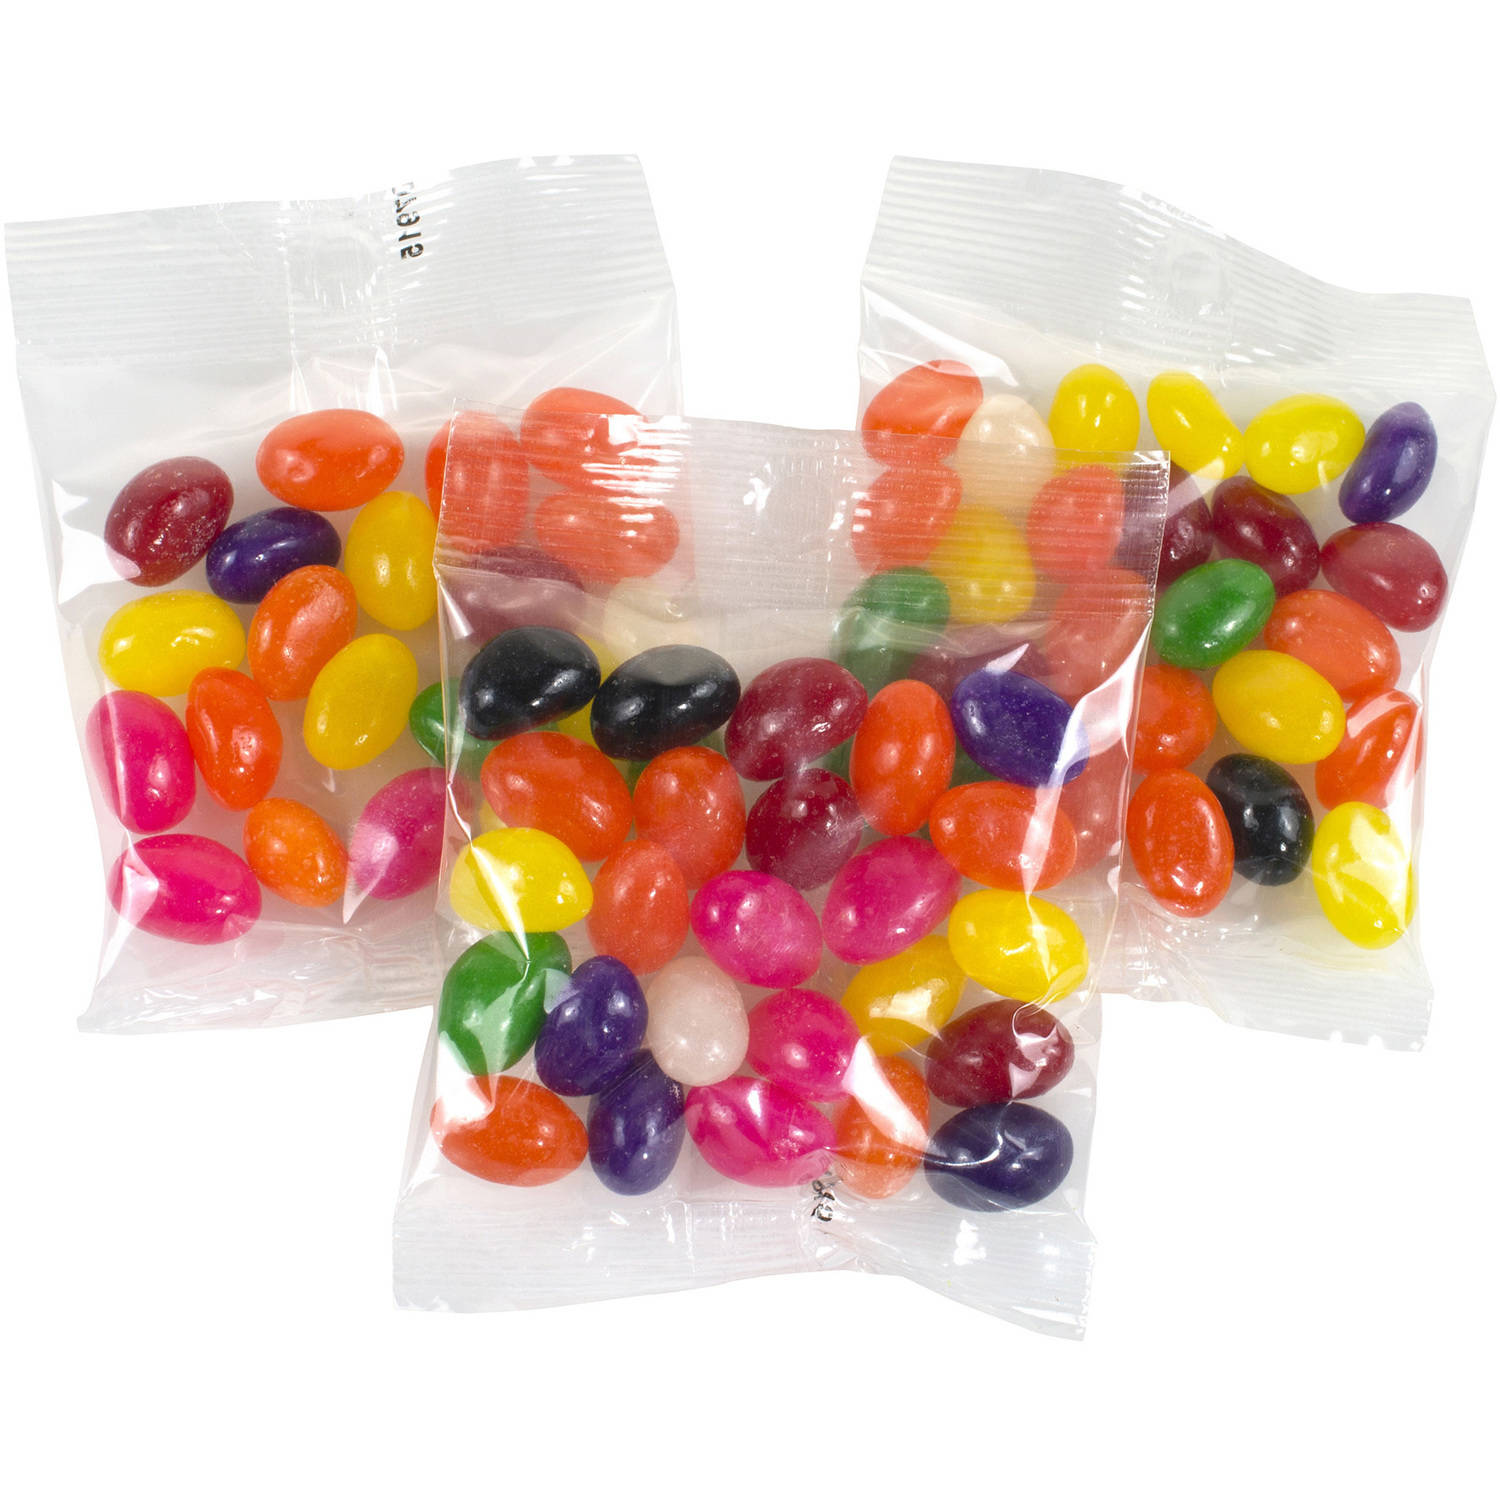 Everson Distributing Individually Wrapped Jelly Beans, 5 lbs by